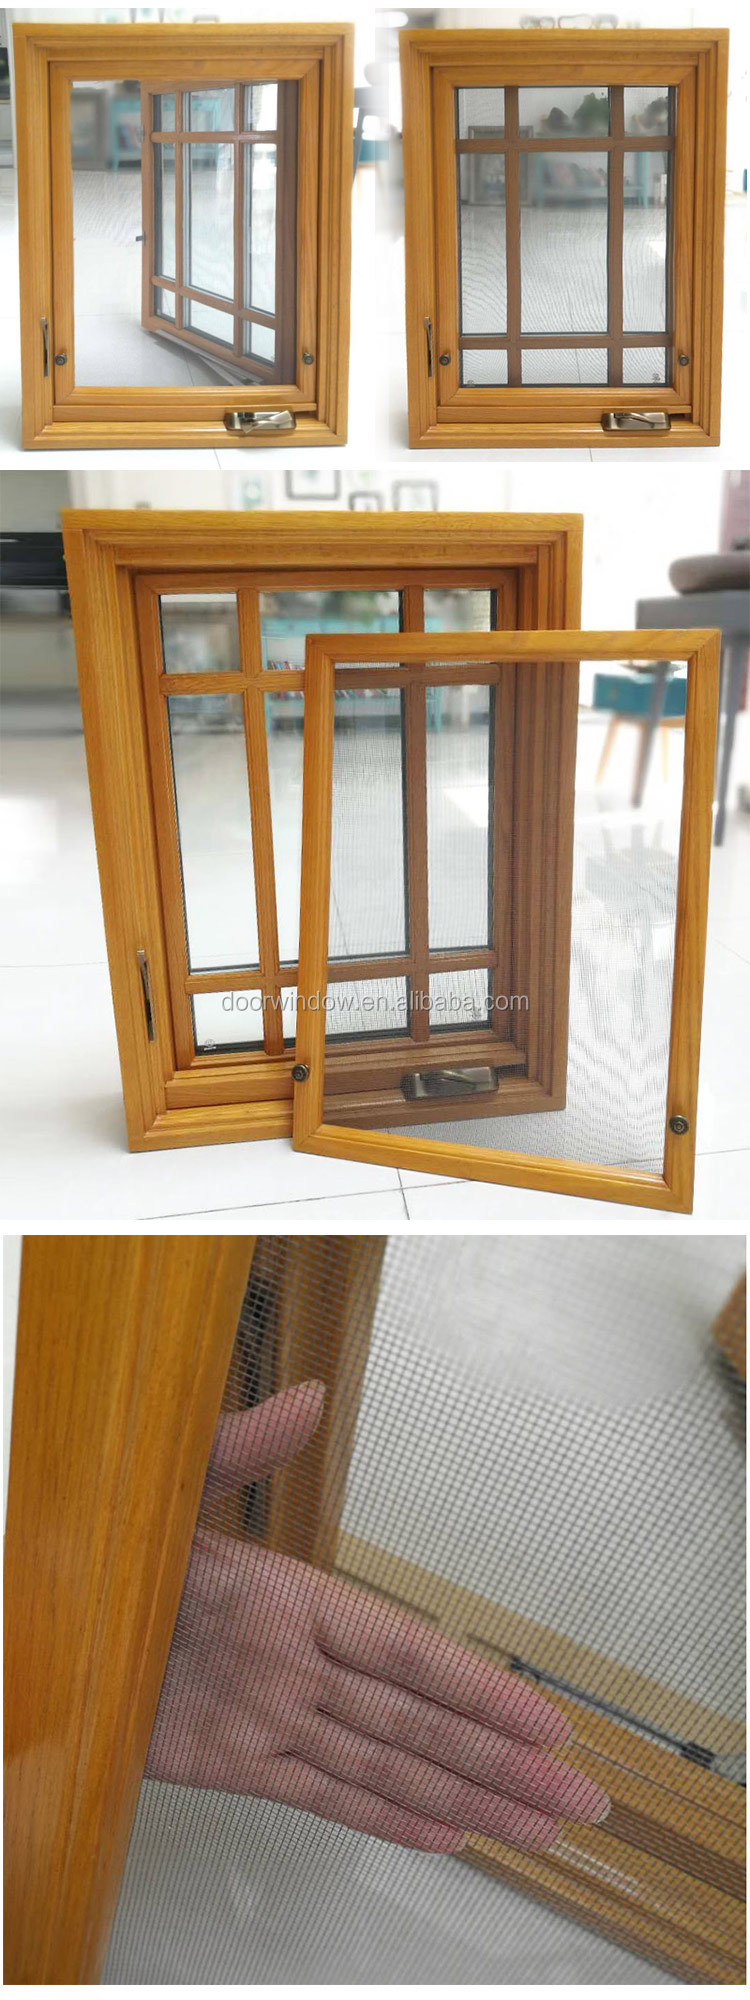 Arch top Sound proof grills design hinged left/right crank open outwards casement Windows